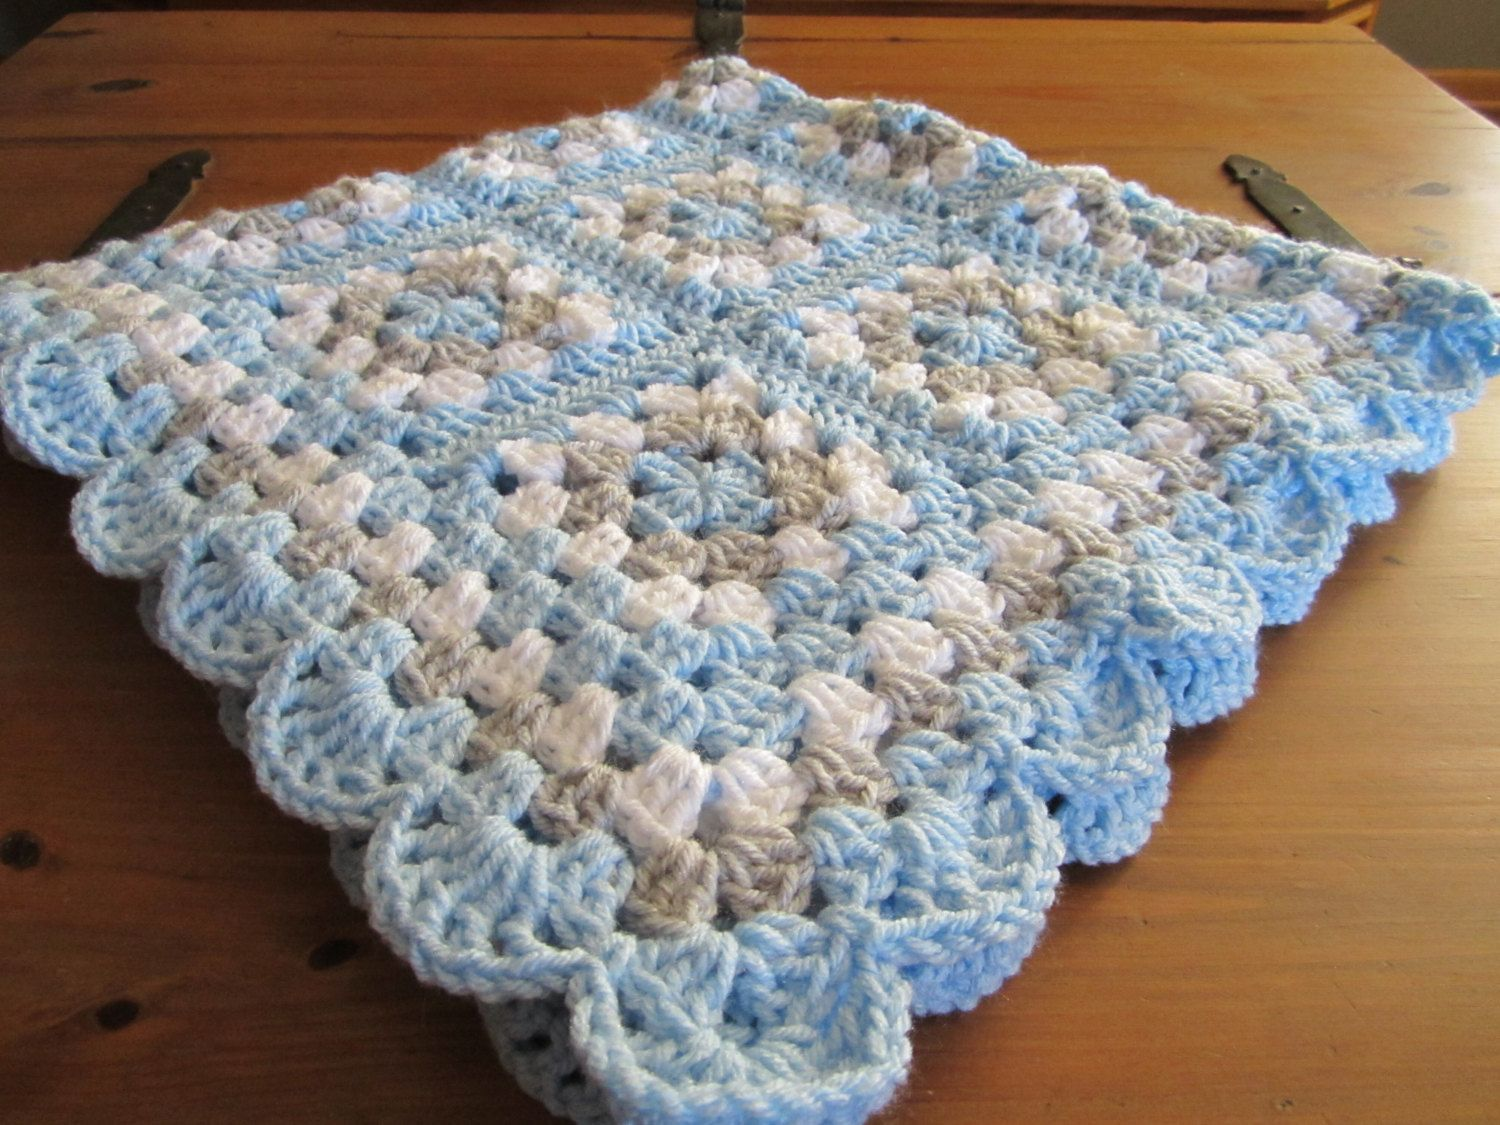 Crochet baby blanket crochet boy blanket by donnaspinsandneedles crochet baby blanket crochet baby afghan granny square handmade baby blanket new baby nursery decor ready to ship bankloansurffo Images